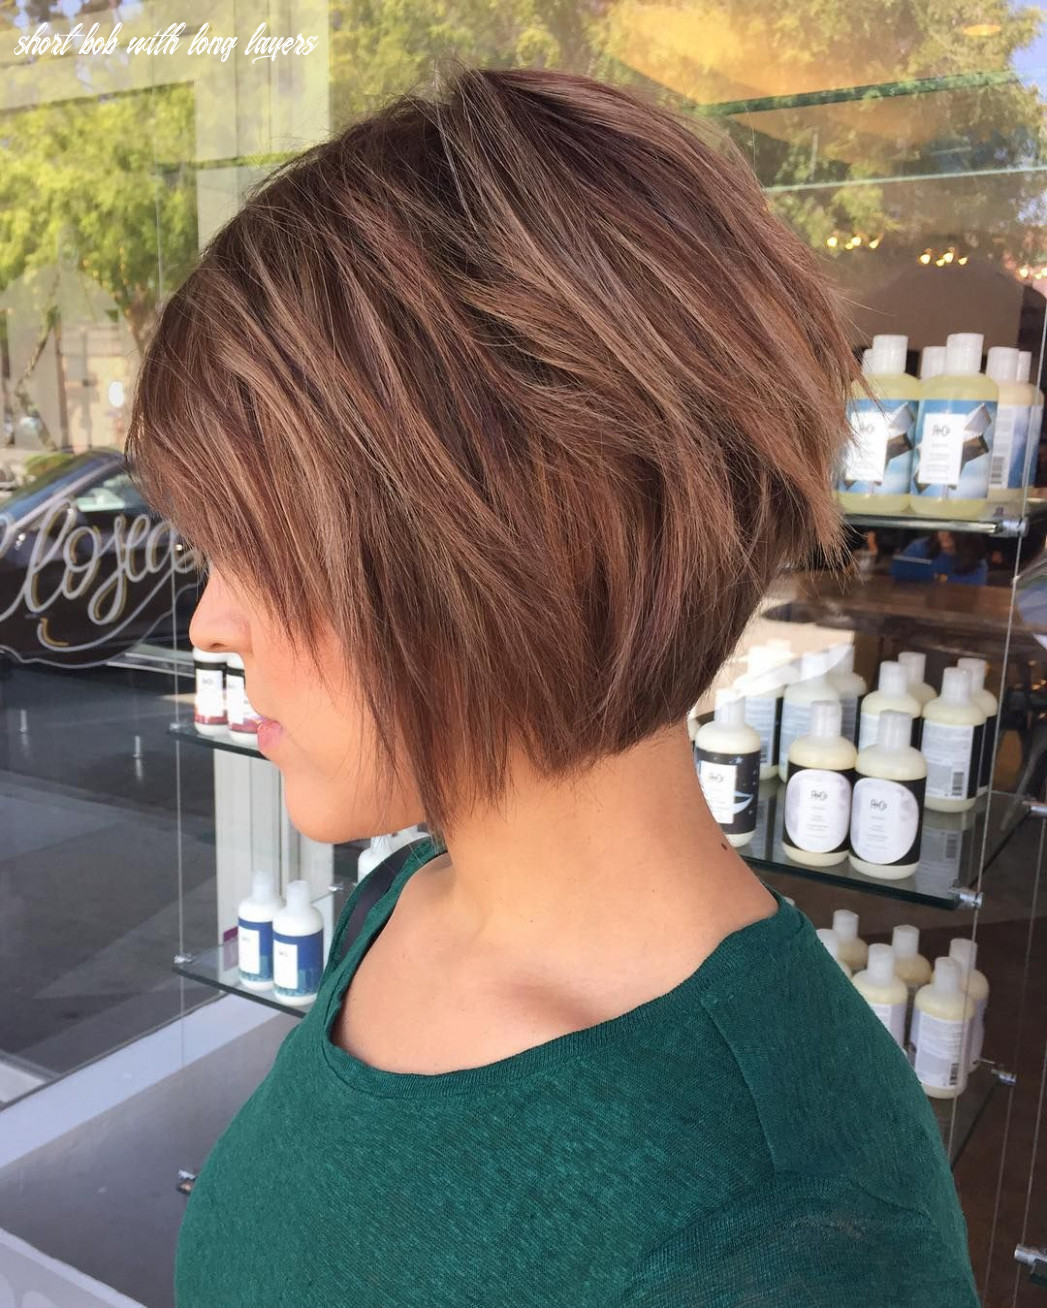 8 chic long and short layered bob haircuts — dazzle with layers